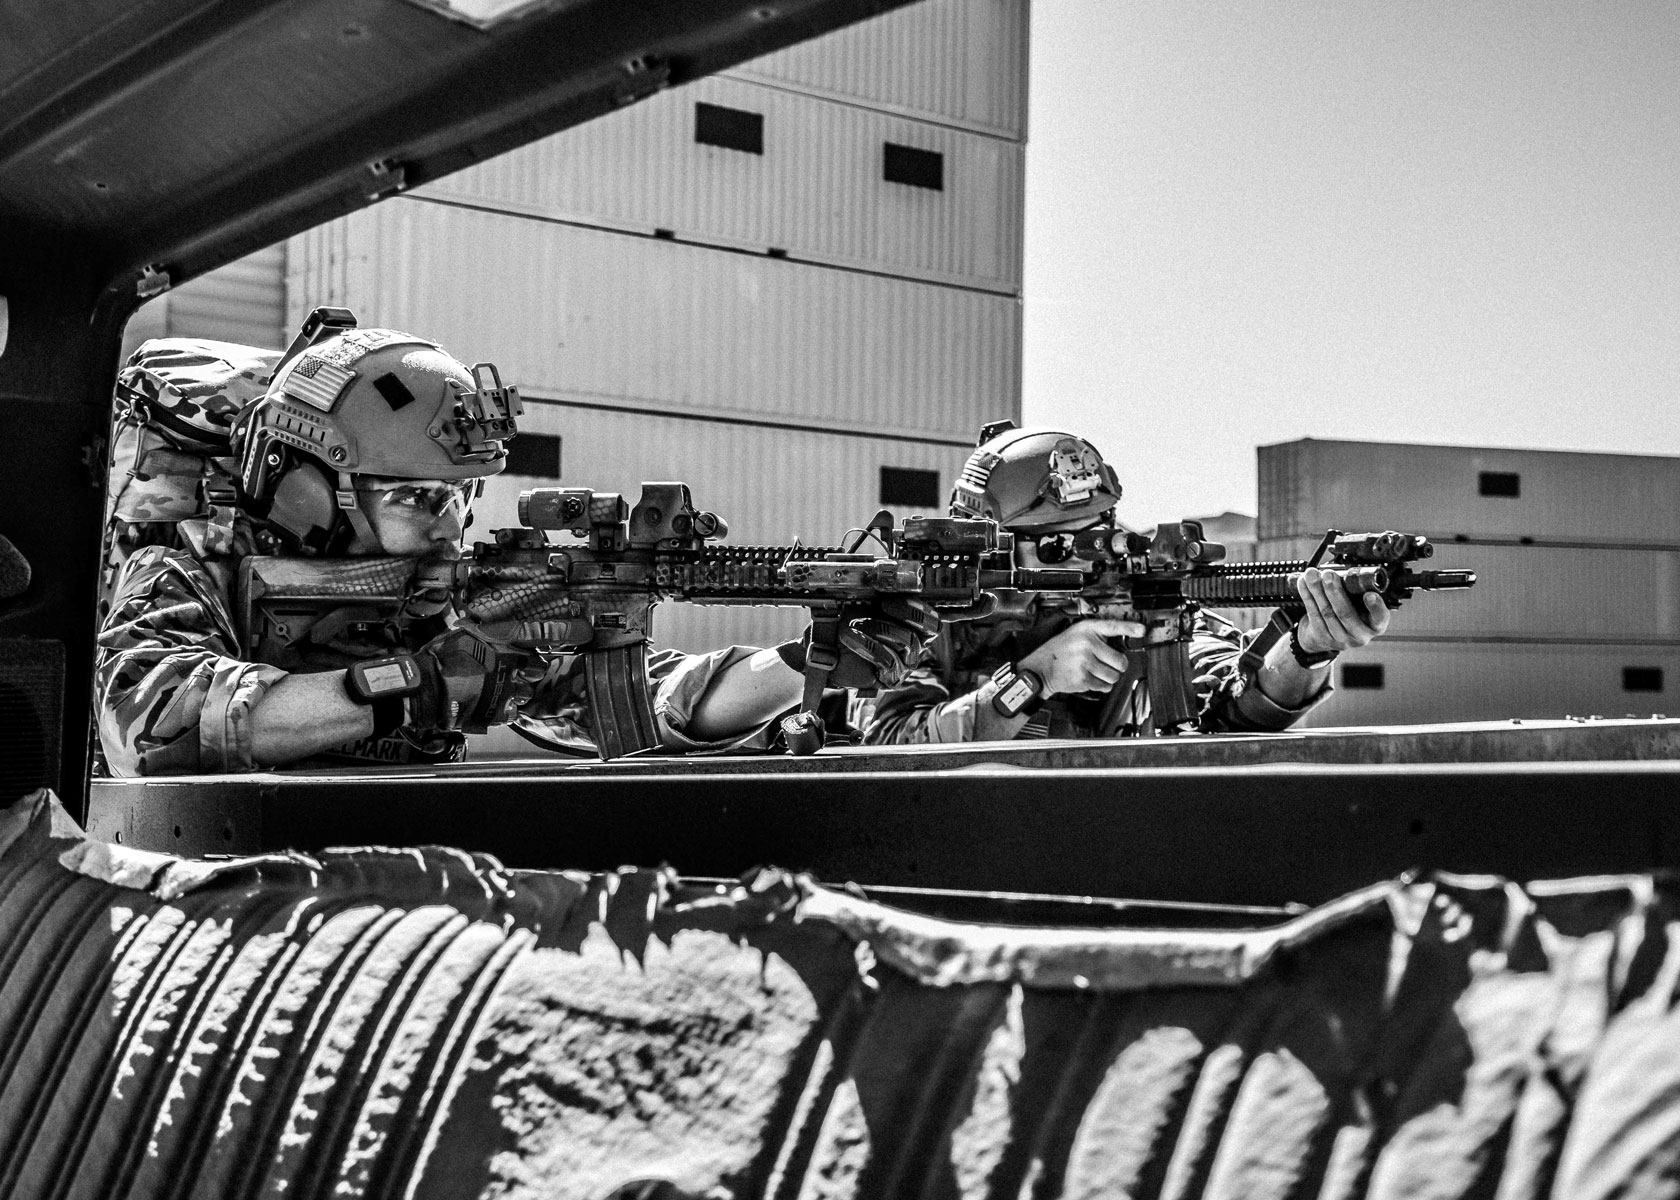 Green Berets from 10th Special Forces Group (Airborne) pull security during a training exercise March 6, 2017 at Nellis Air Force Base, Nevada.